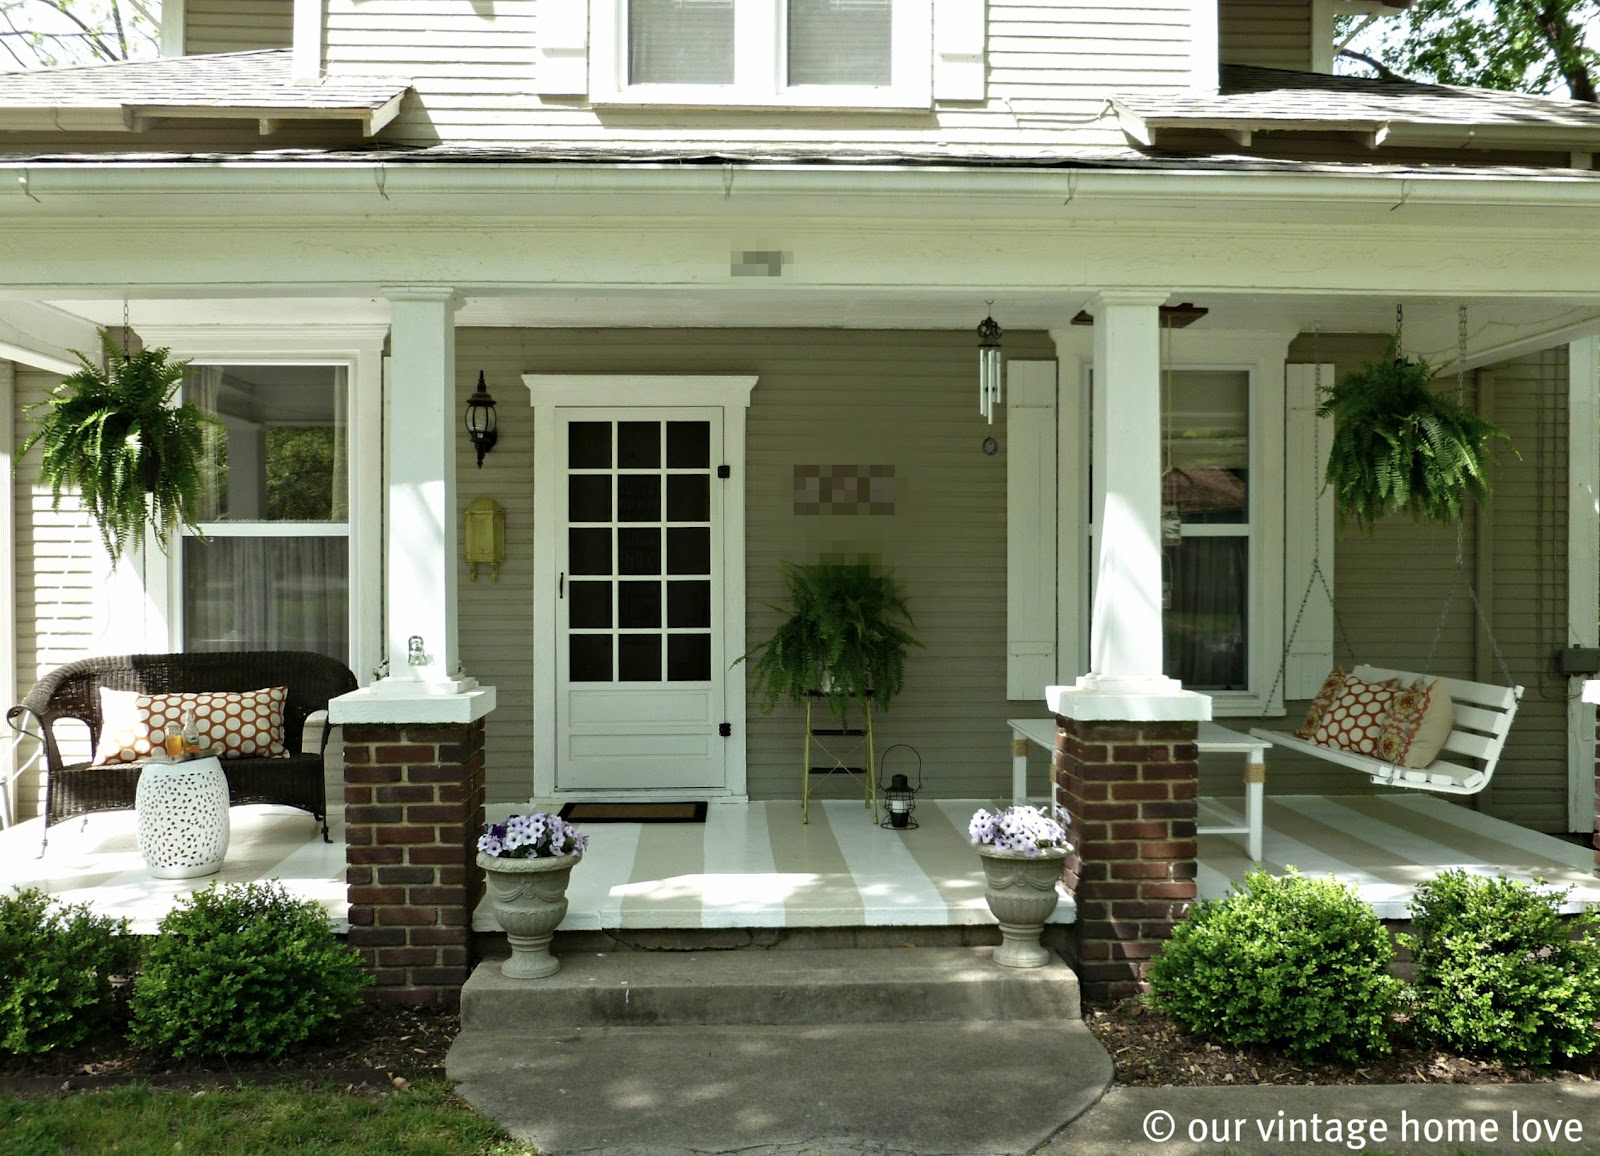 our vintage home love: Spring/Summer Porch Ideas